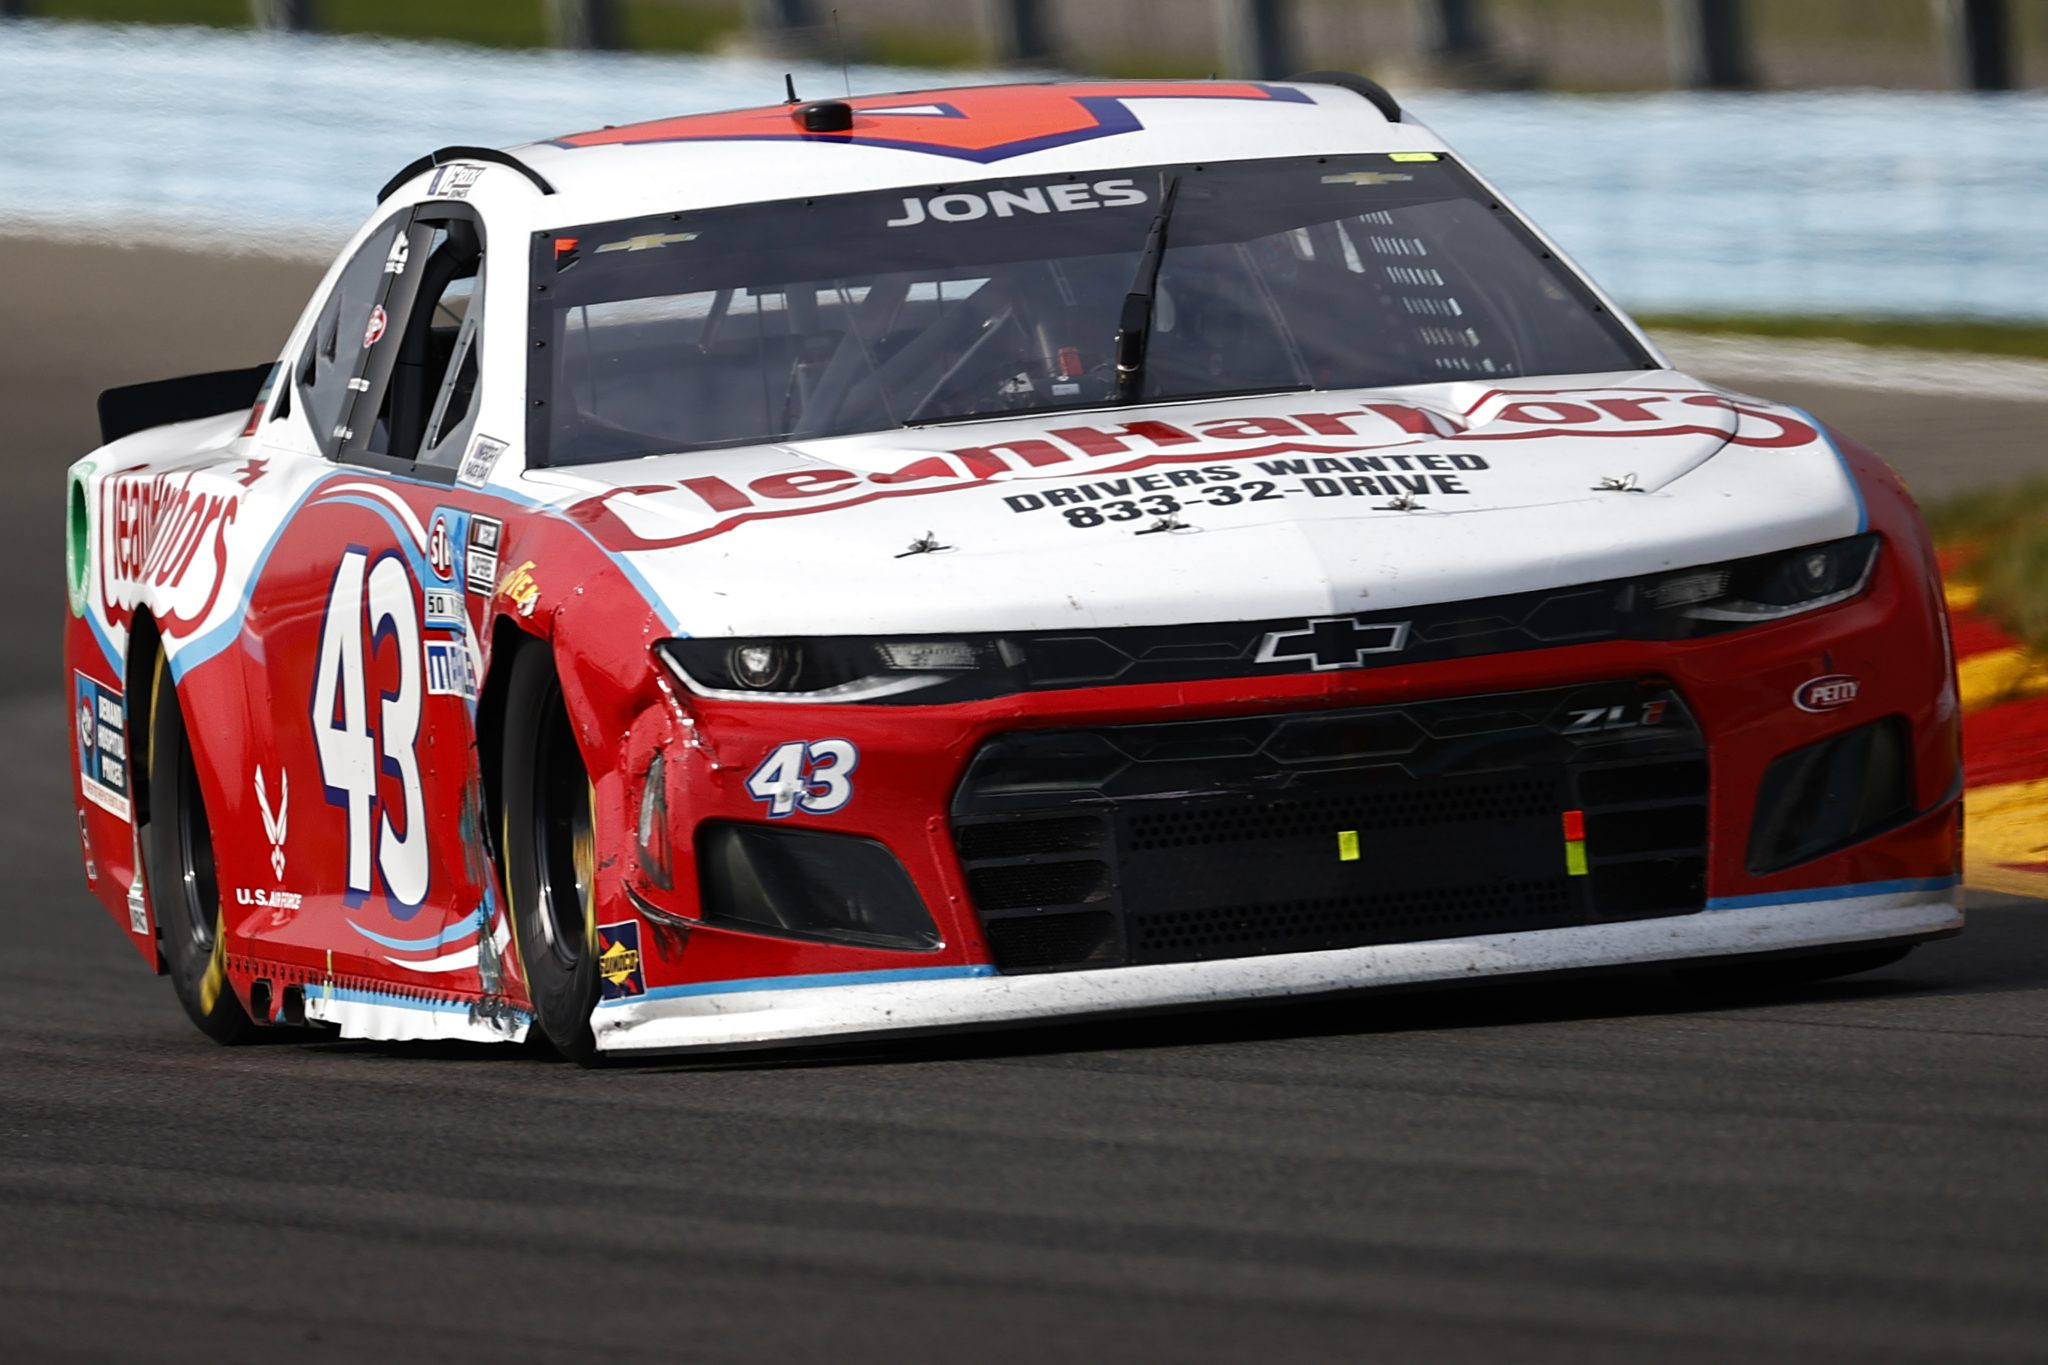 WATKINS GLEN, NEW YORK - AUGUST 08: Erik Jones, driver of the #43 Clean Harbors Chevrolet, drives during the NASCAR Cup Series Go Bowling at The Glen at Watkins Glen International on August 08, 2021 in Watkins Glen, New York. (Photo by Jared C. Tilton/Getty Images)   Getty Images